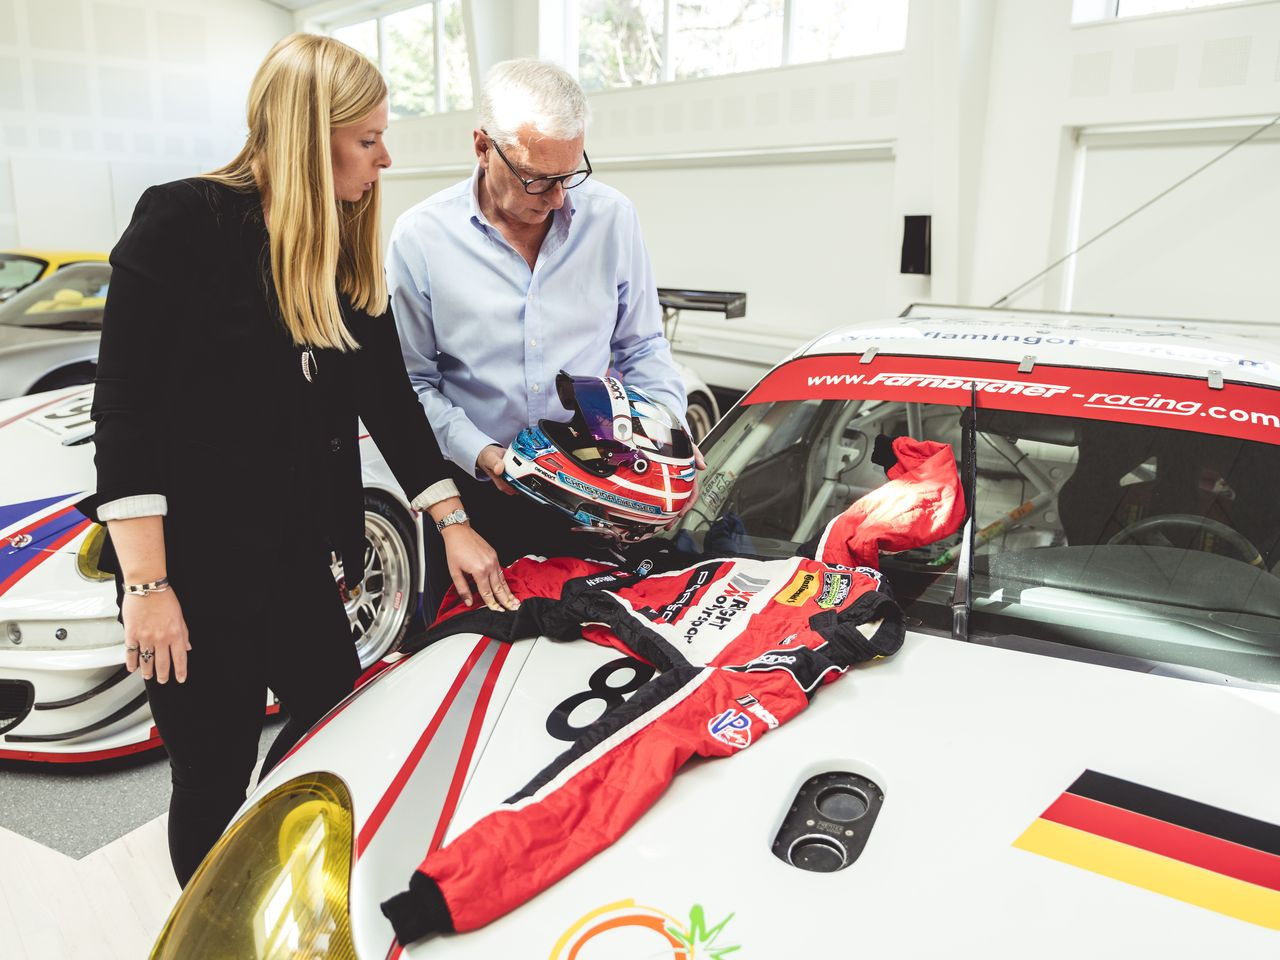 Nielsen takes her new racing suit home, laying it out on the hood of a Porsche 996 GT3 RSR for her father Lars Erik to inspect. In 2006 he drove this car to a second-place finish in the GT2 class in Le Mans.